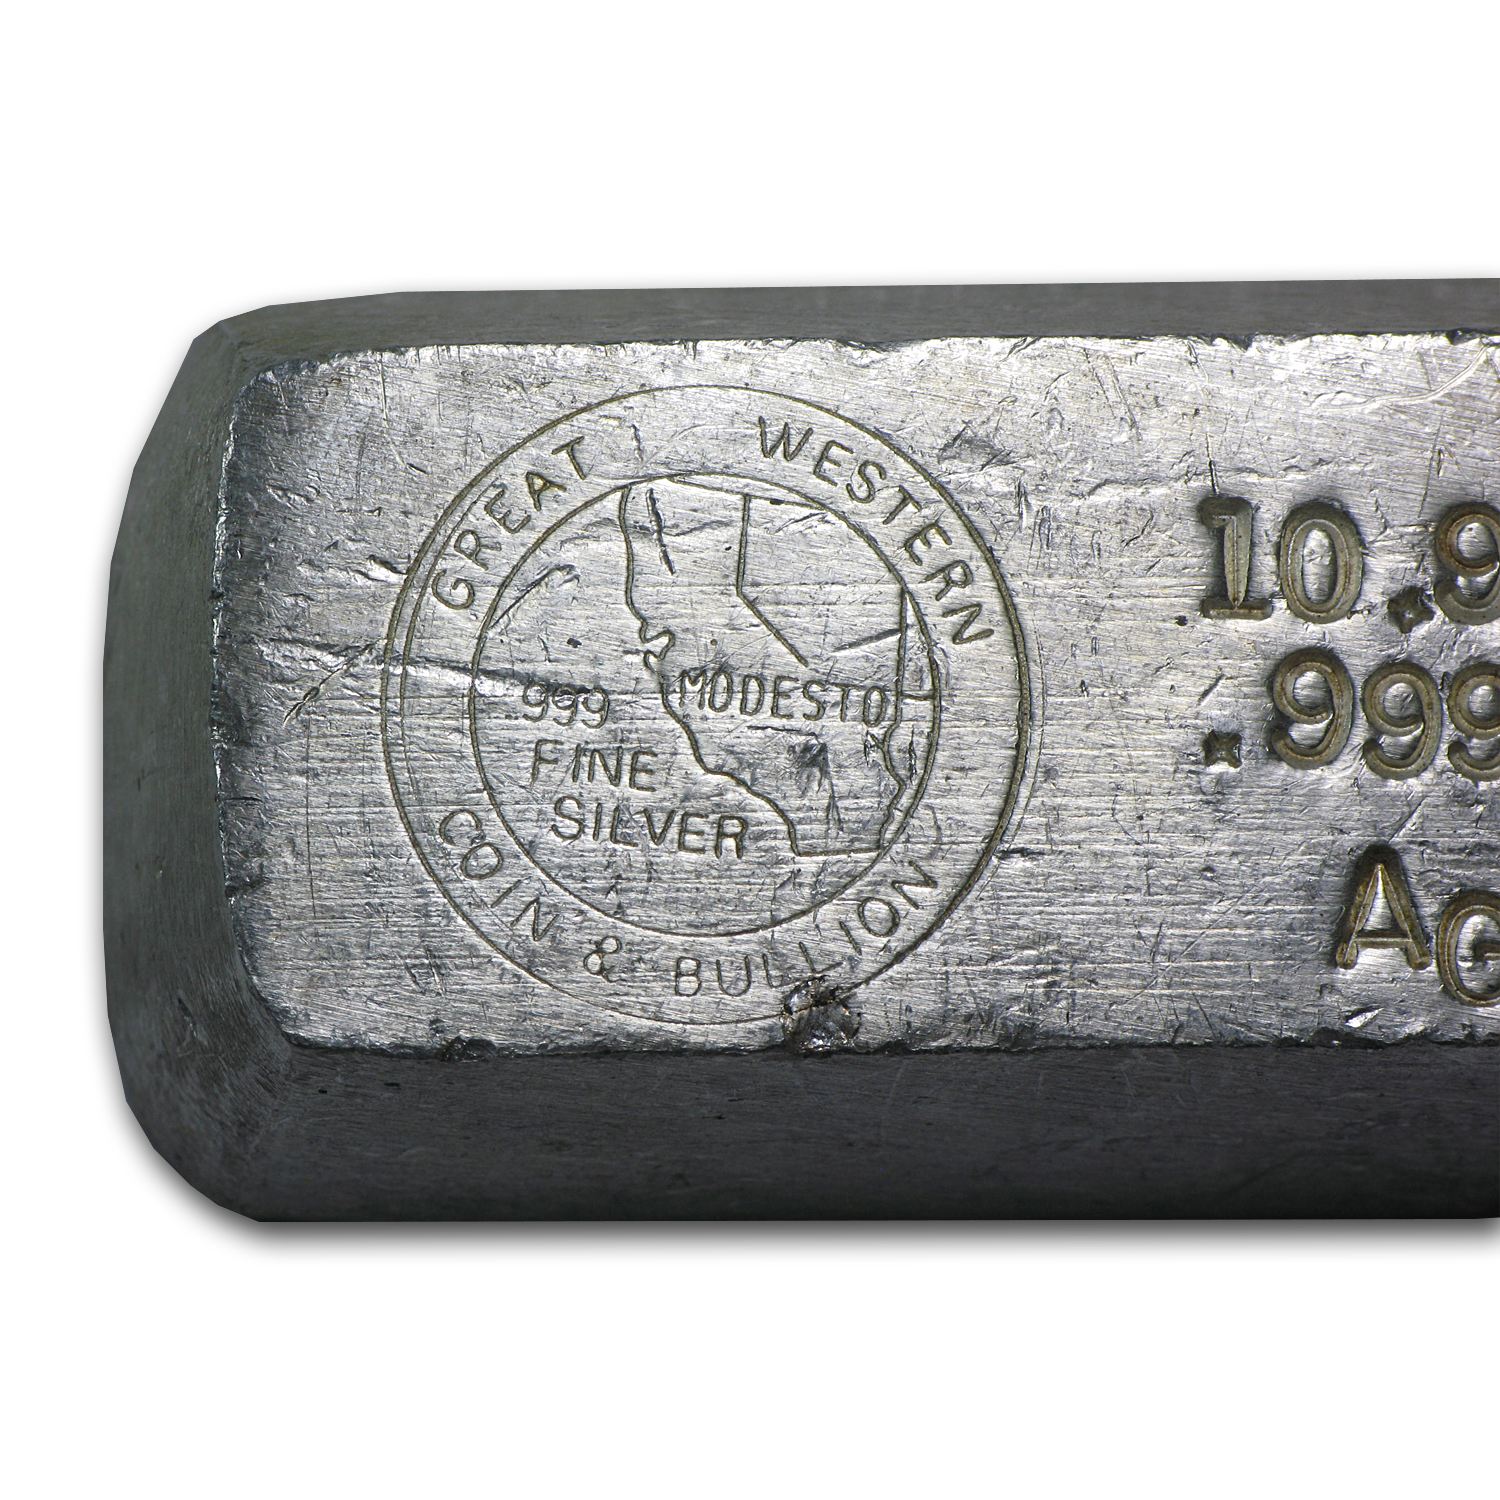 10.93 oz Silver Bars - Great Western Coin & Bullion